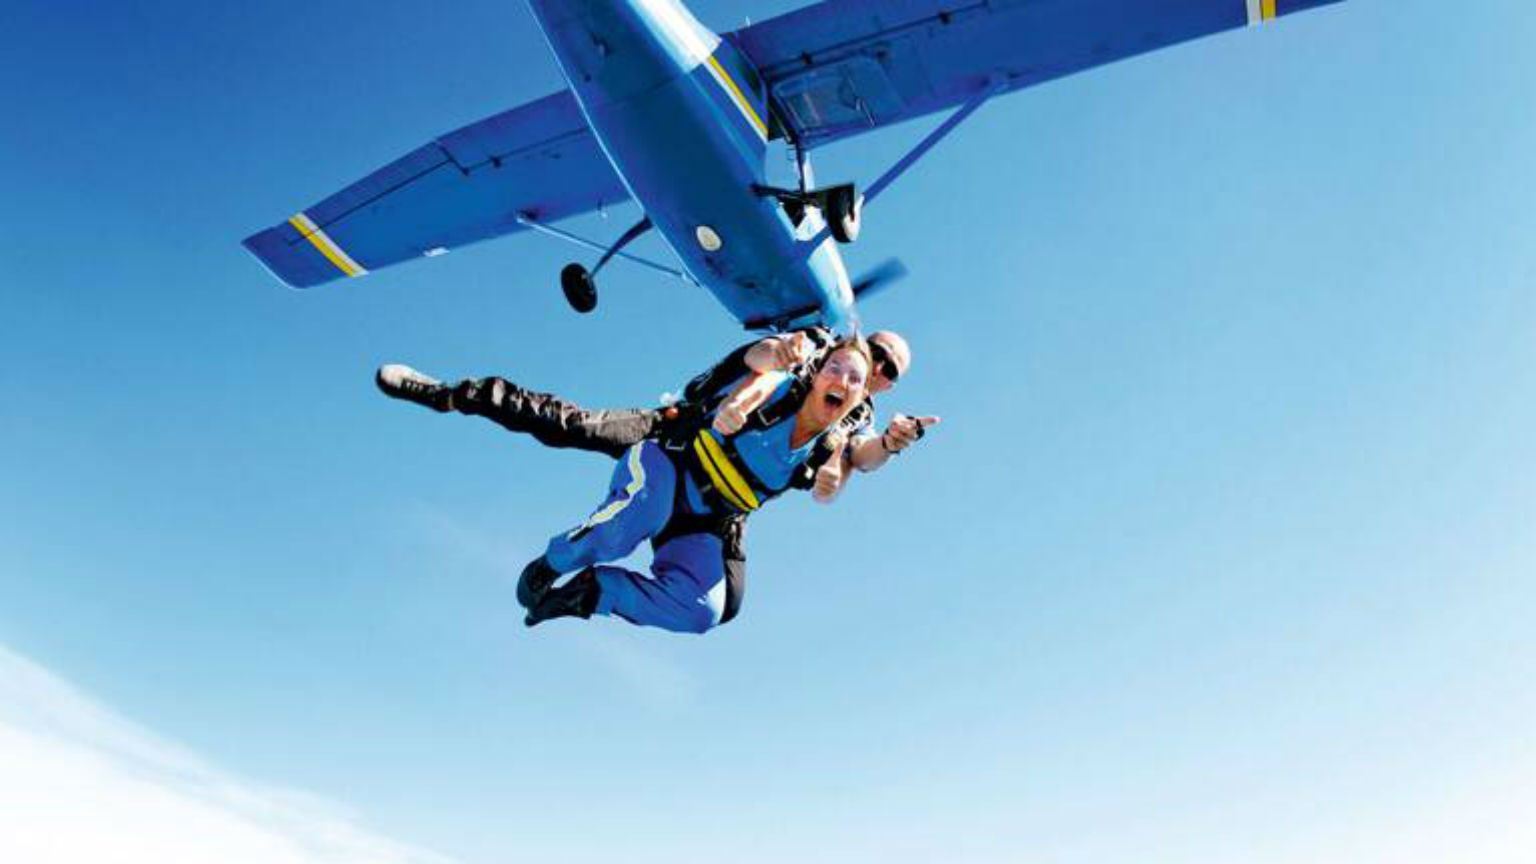 Skydiving experience in Melbourne